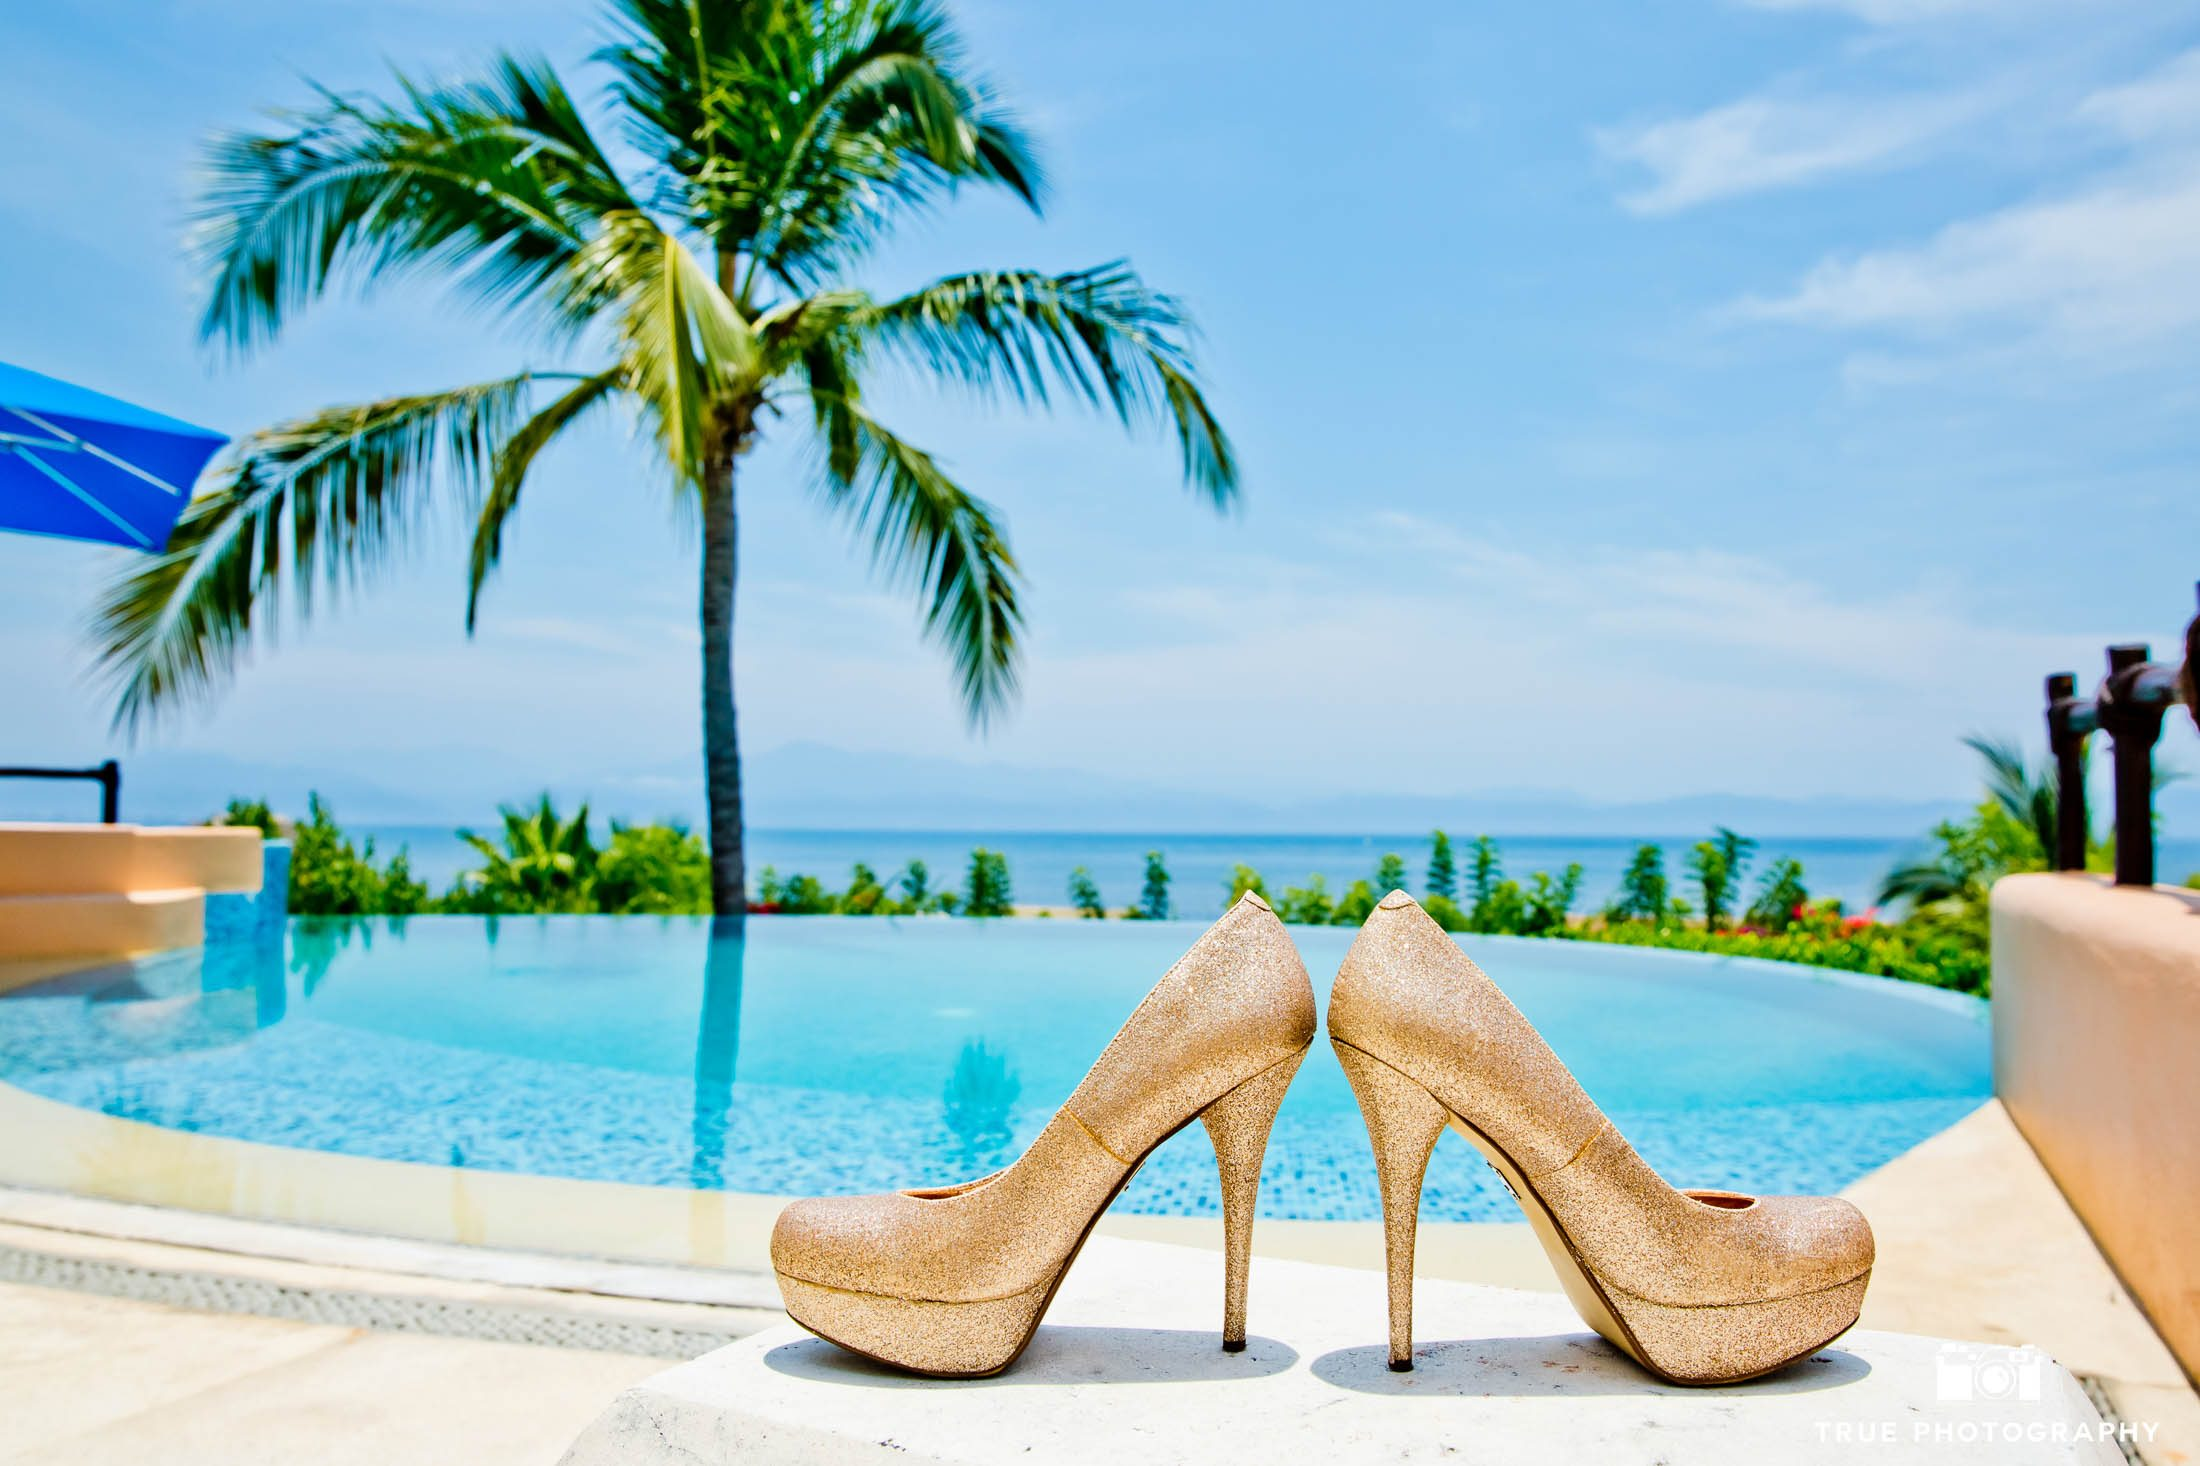 A brides choice for wedding shoes during a tropical destination wedding